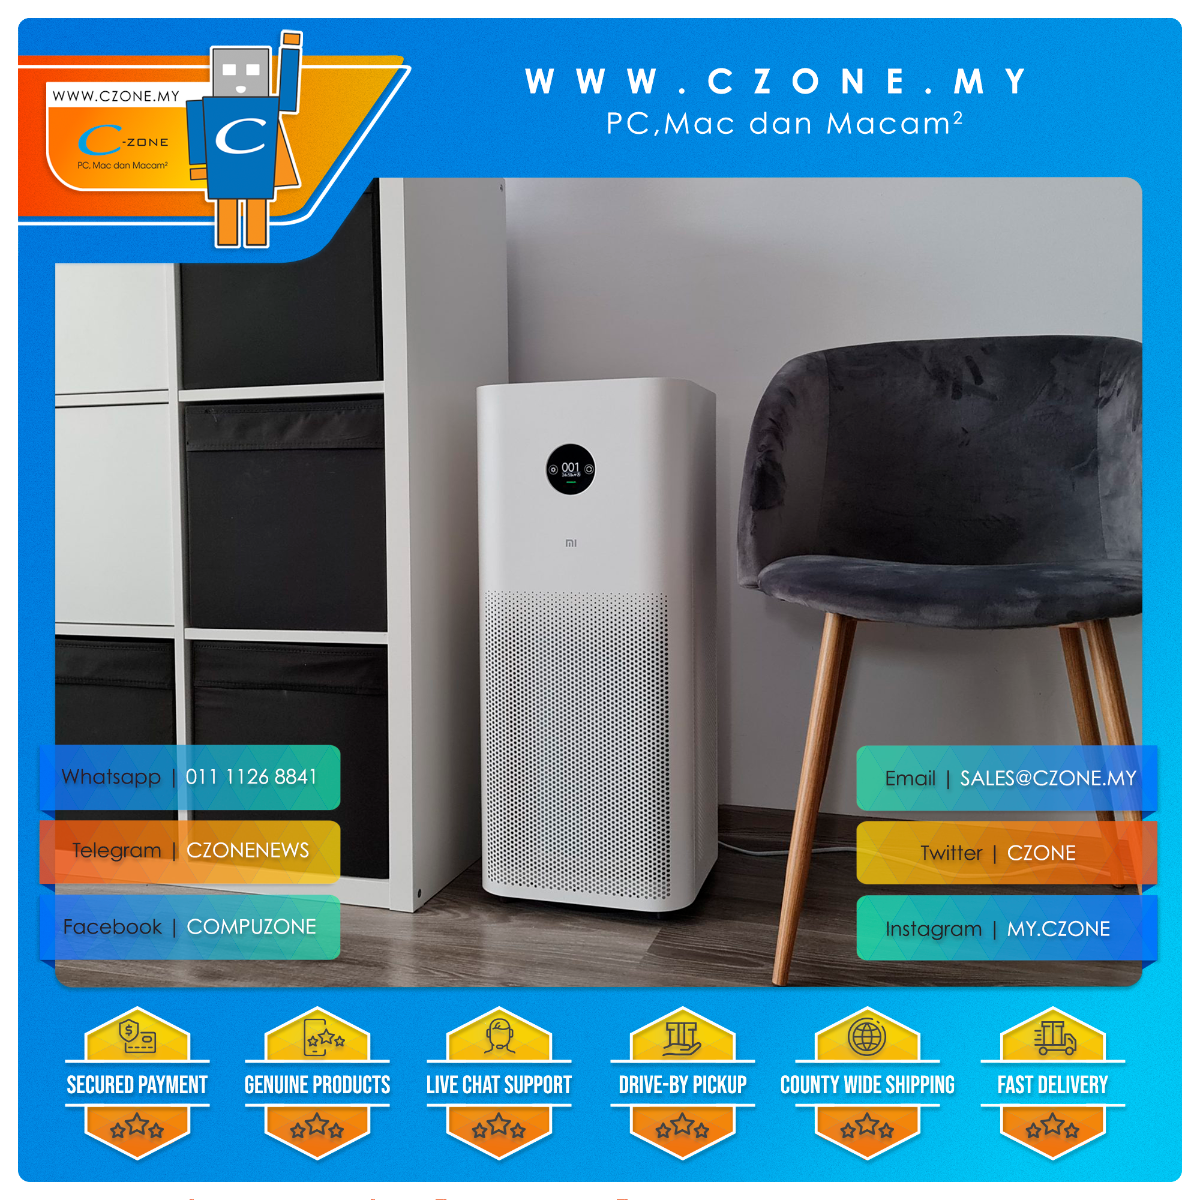 https://czone.my/czone/lifestyle/liftstyle-accessories/humidifiers.html